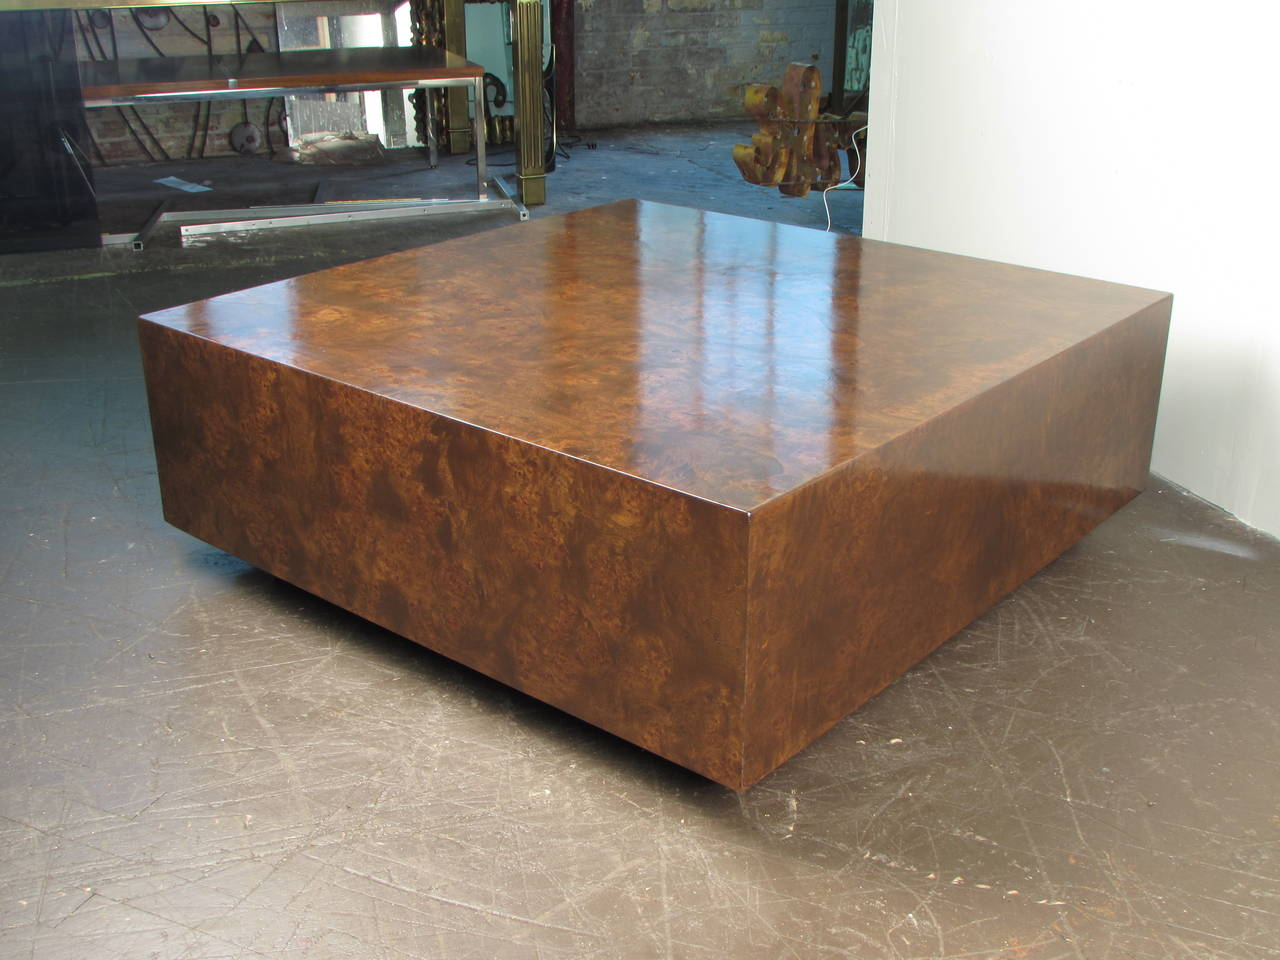 Burled Wood Cube Coffee Table By Milo Baughman For Thayer Coggin 1970s Newly Refinished